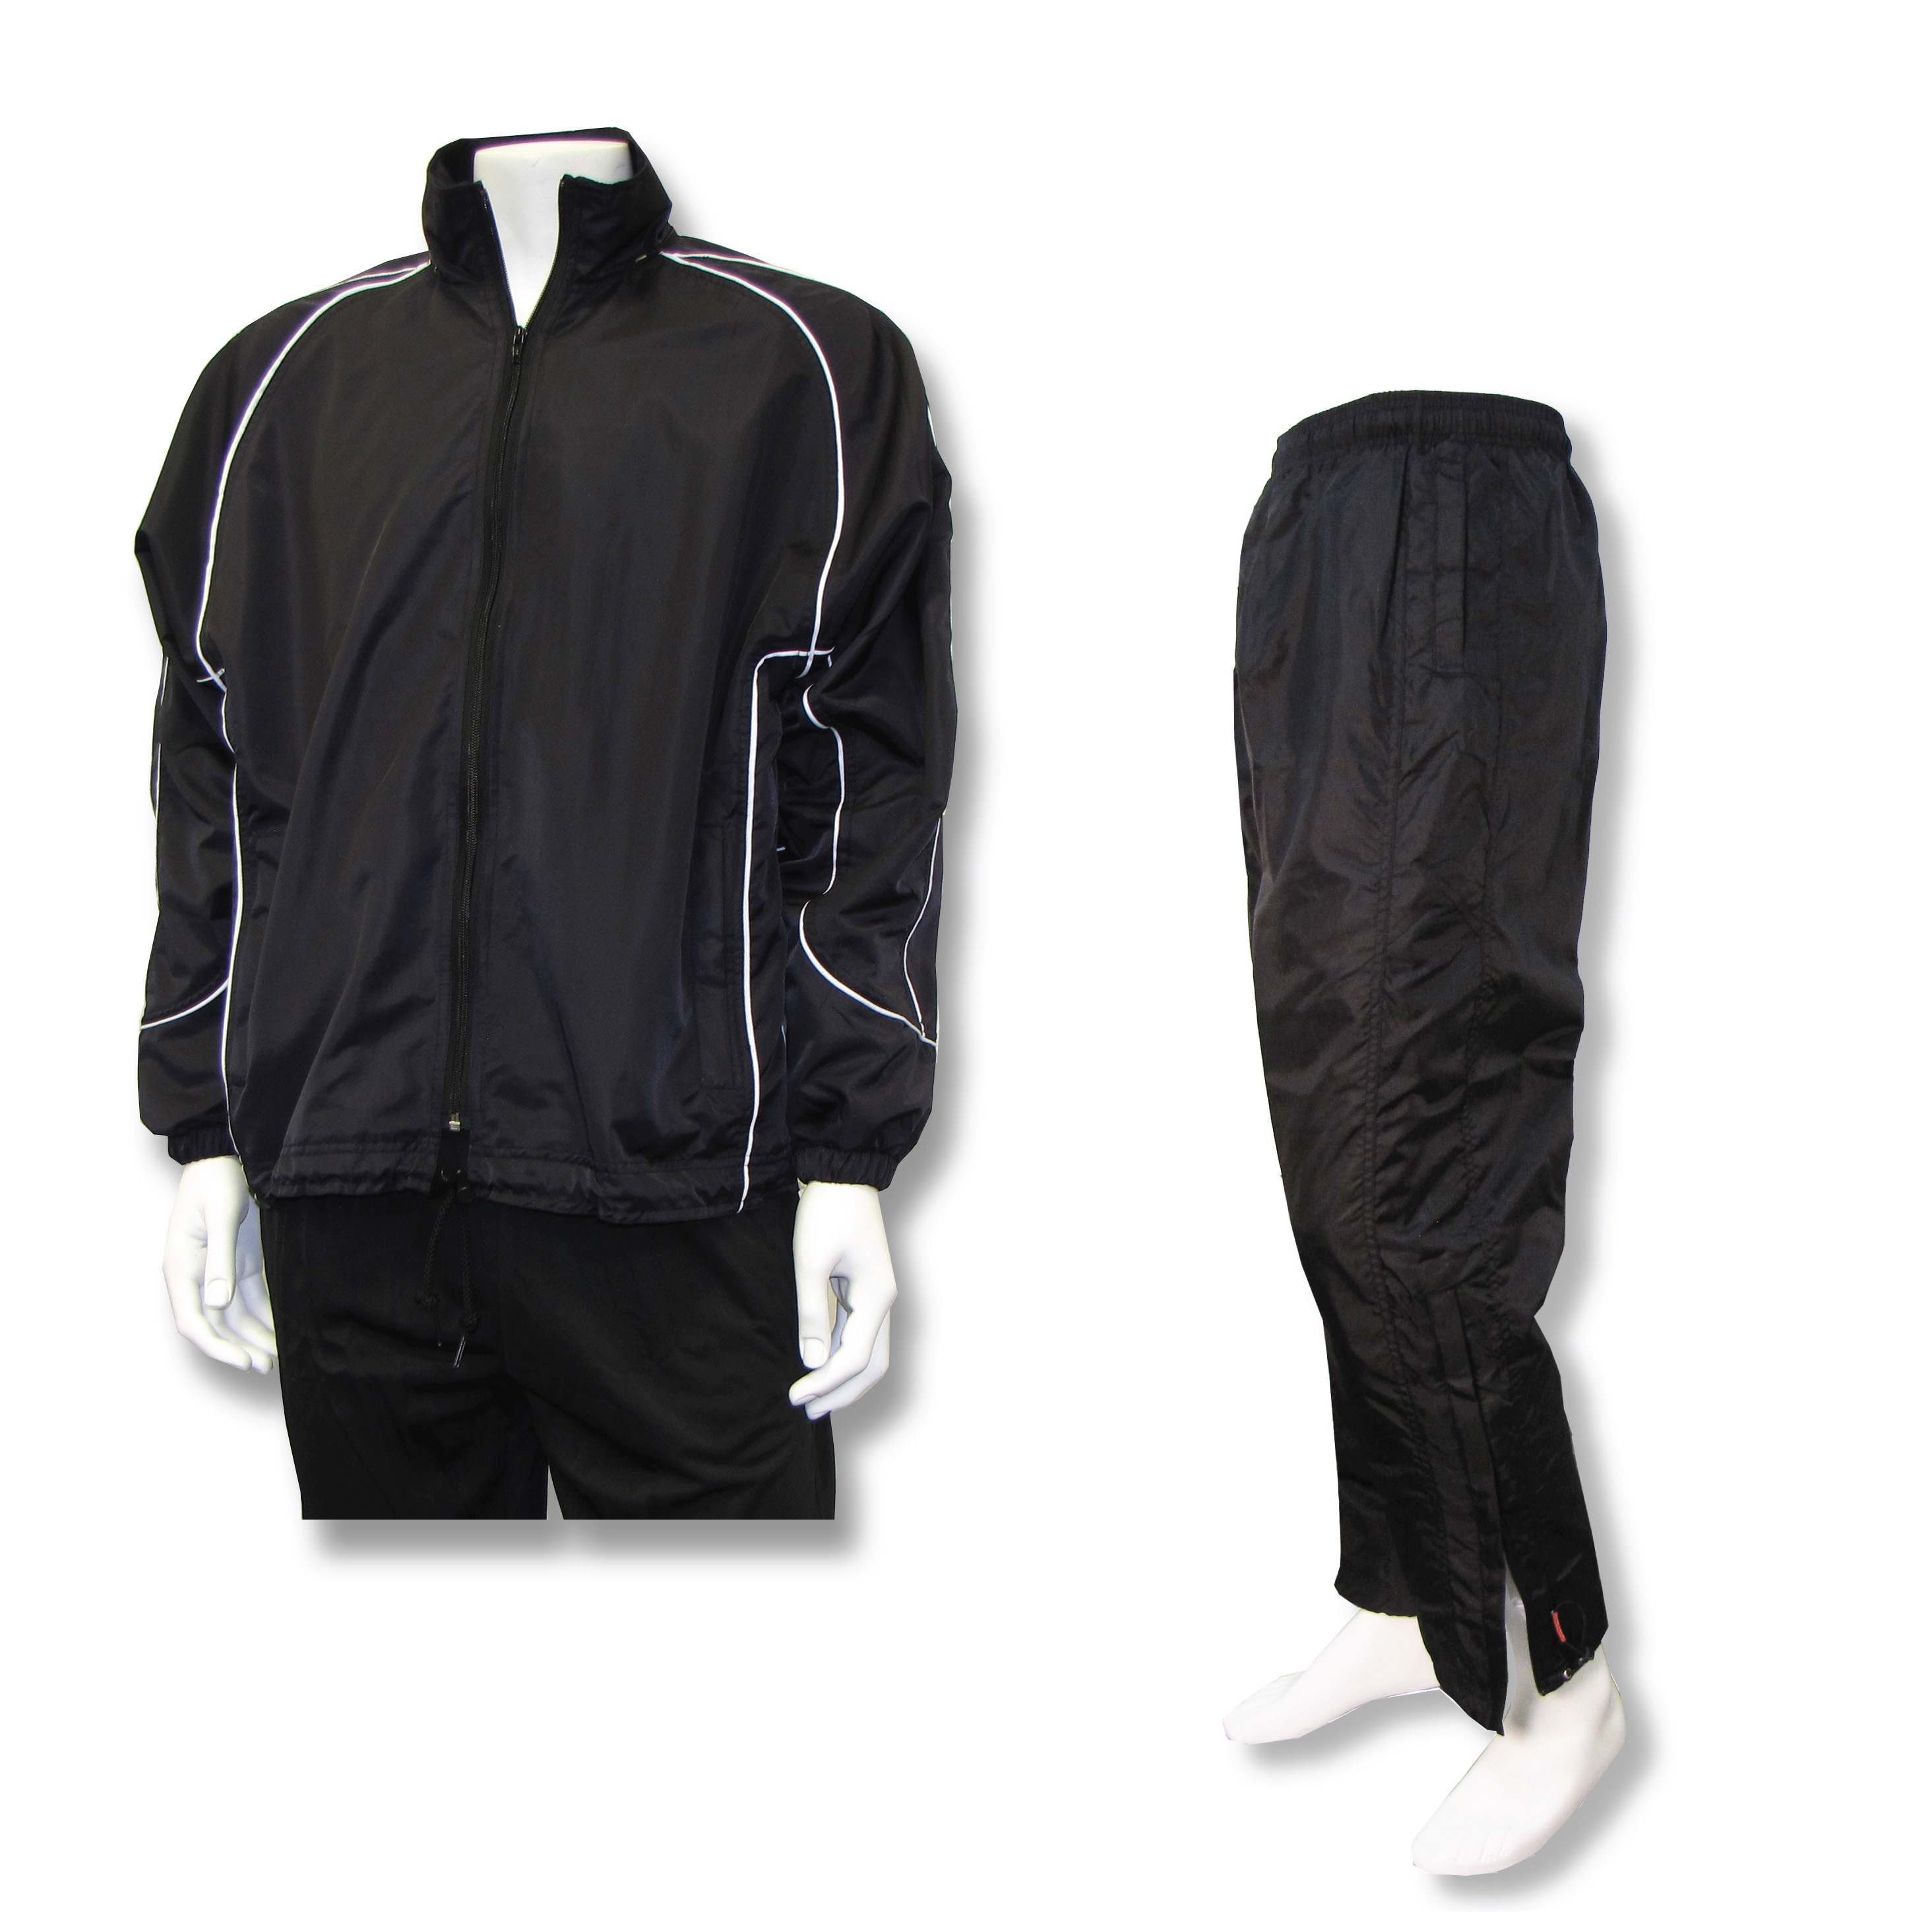 Water resistant warmup set in black by Code Four Athletics